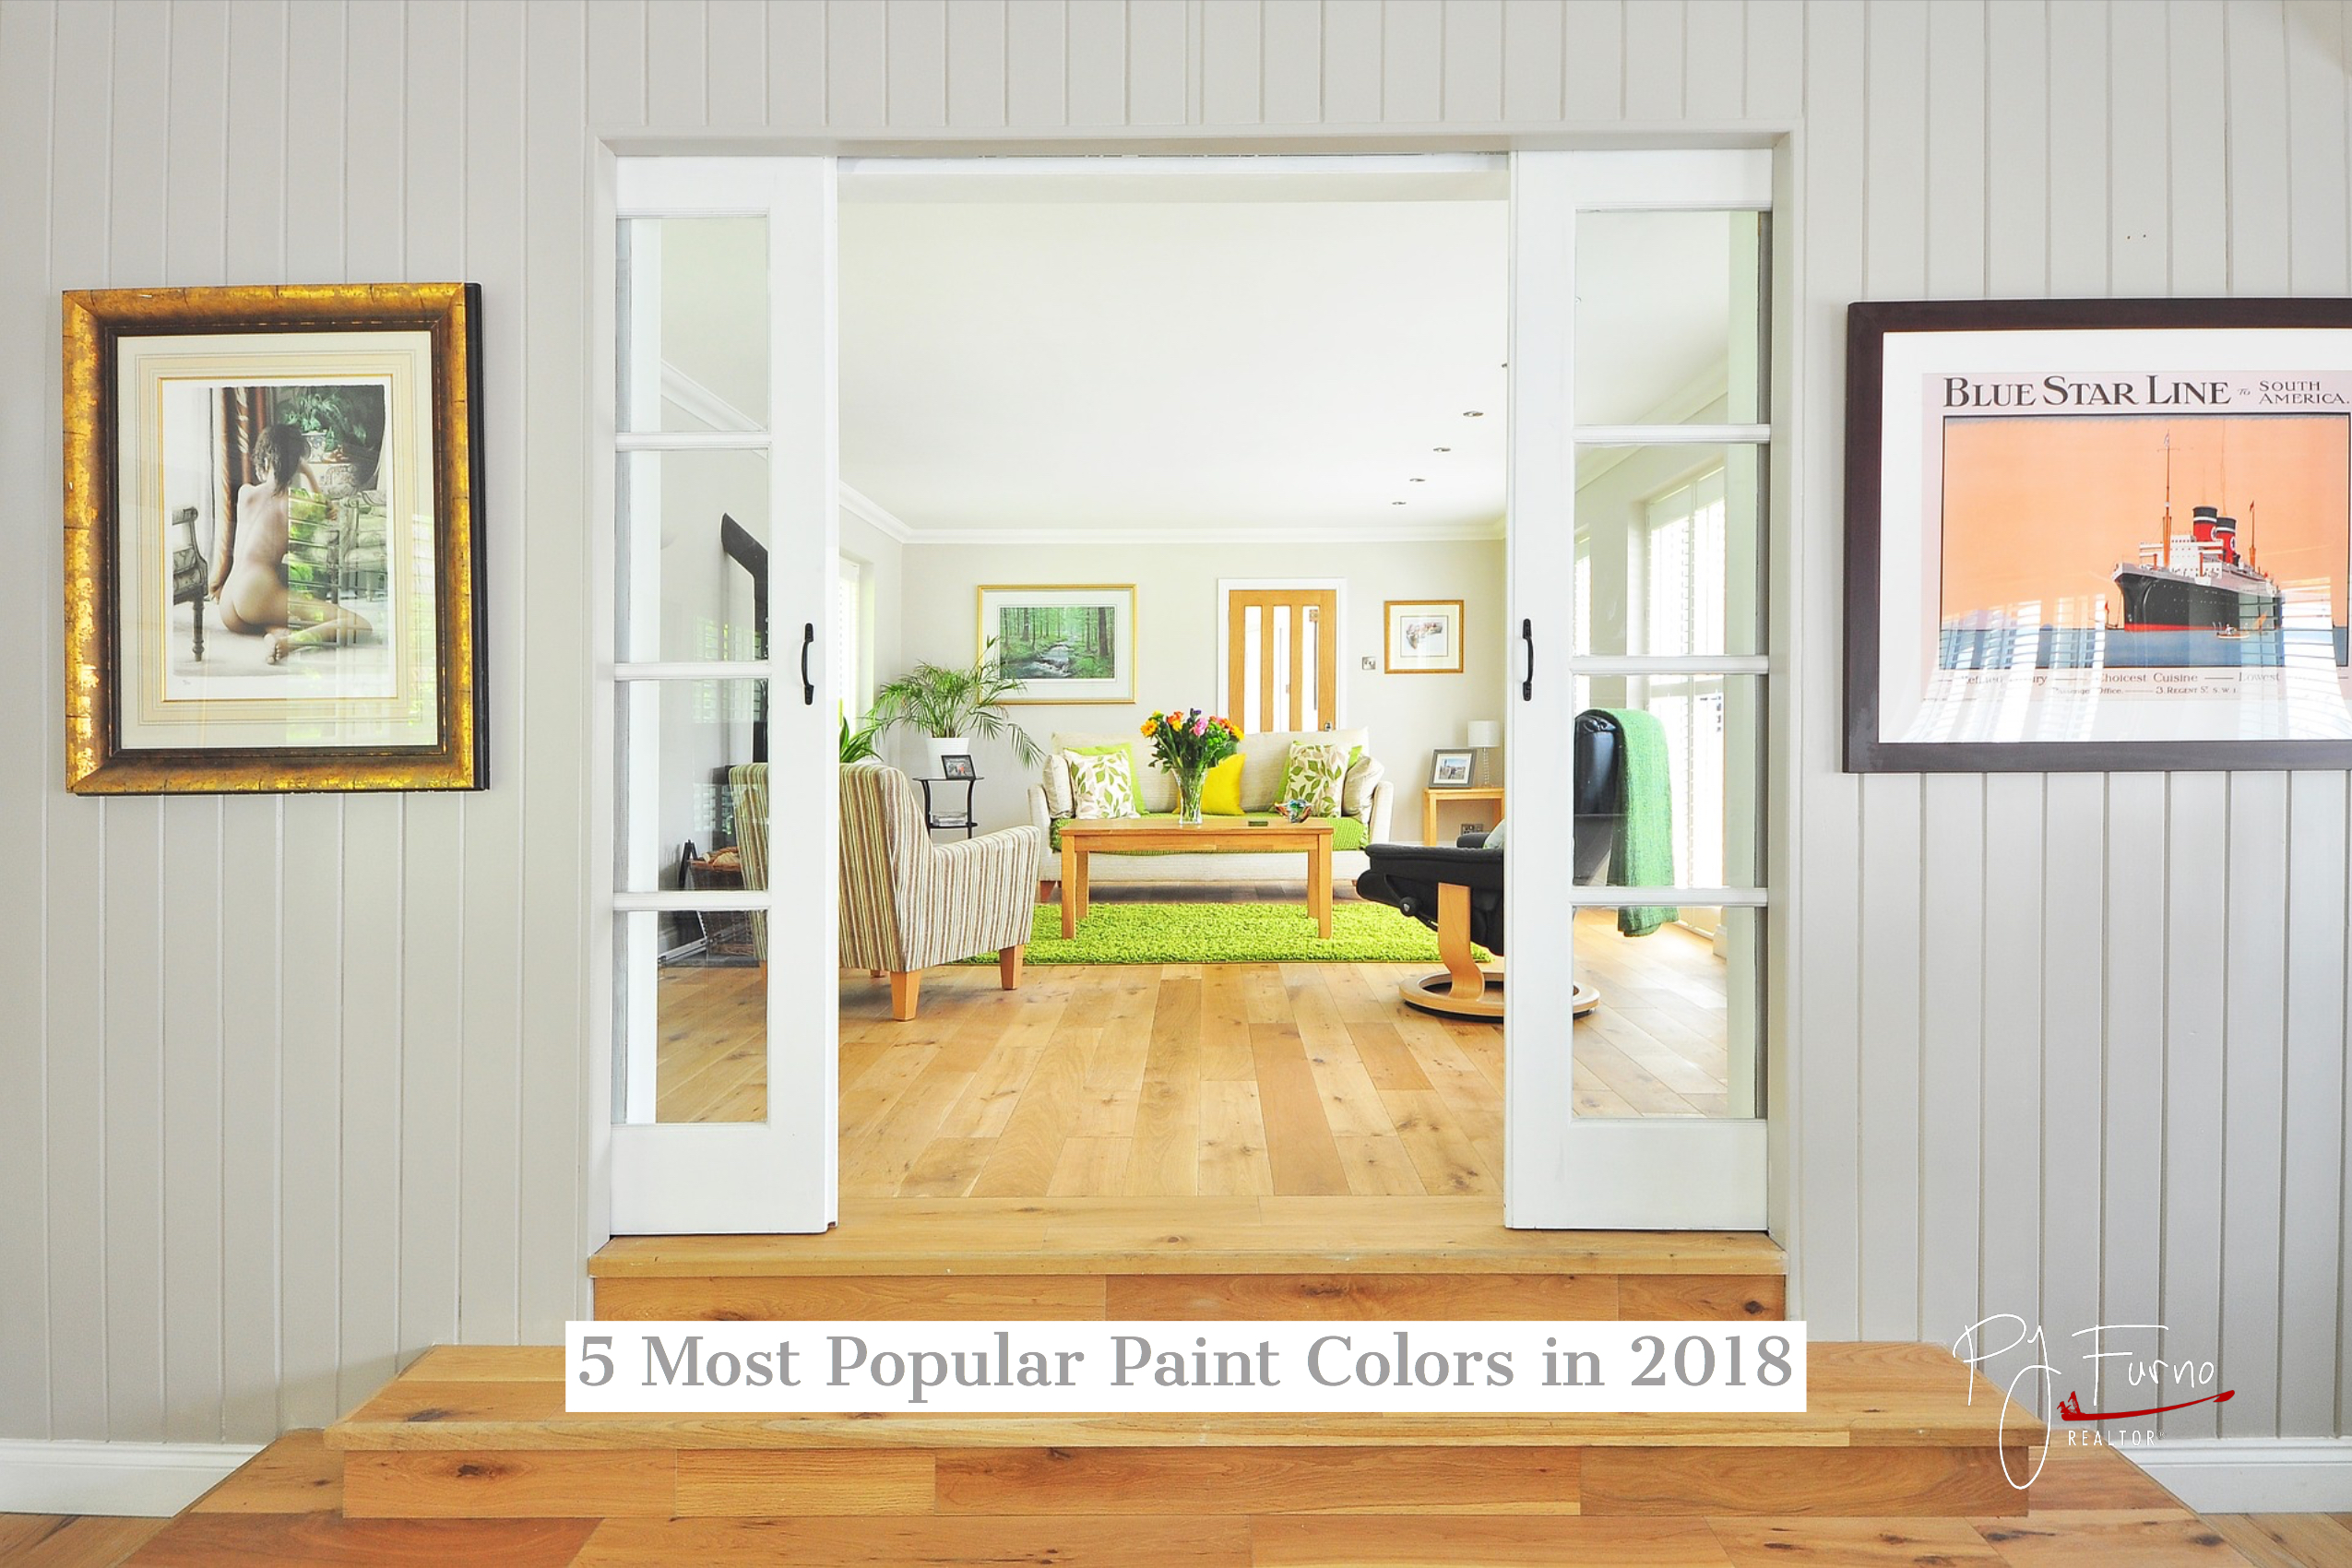 5 most popular paint colors in 2018